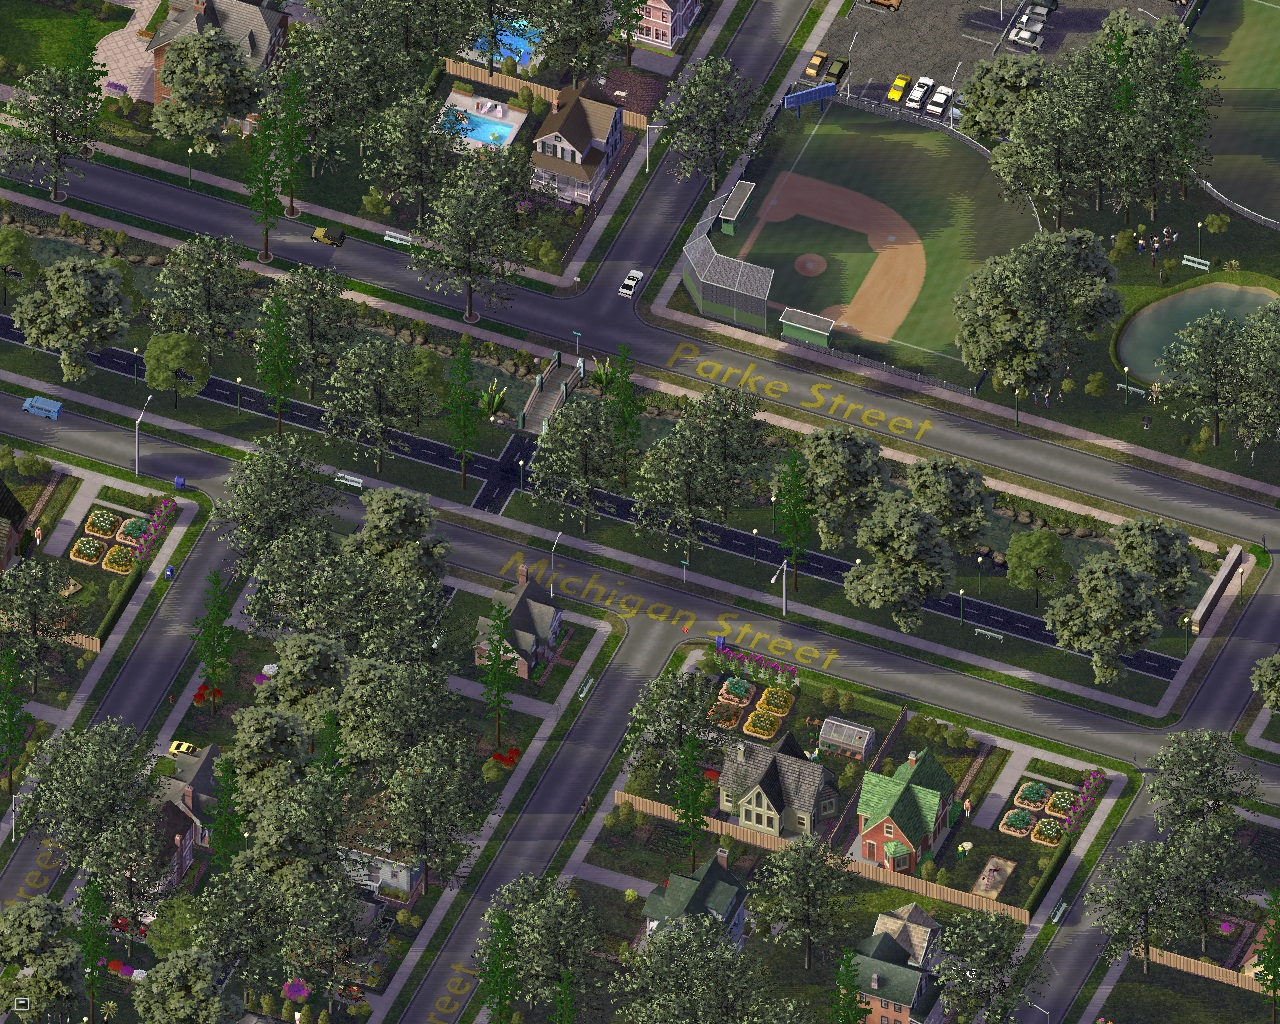 Northwood_Neighborhood.jpg